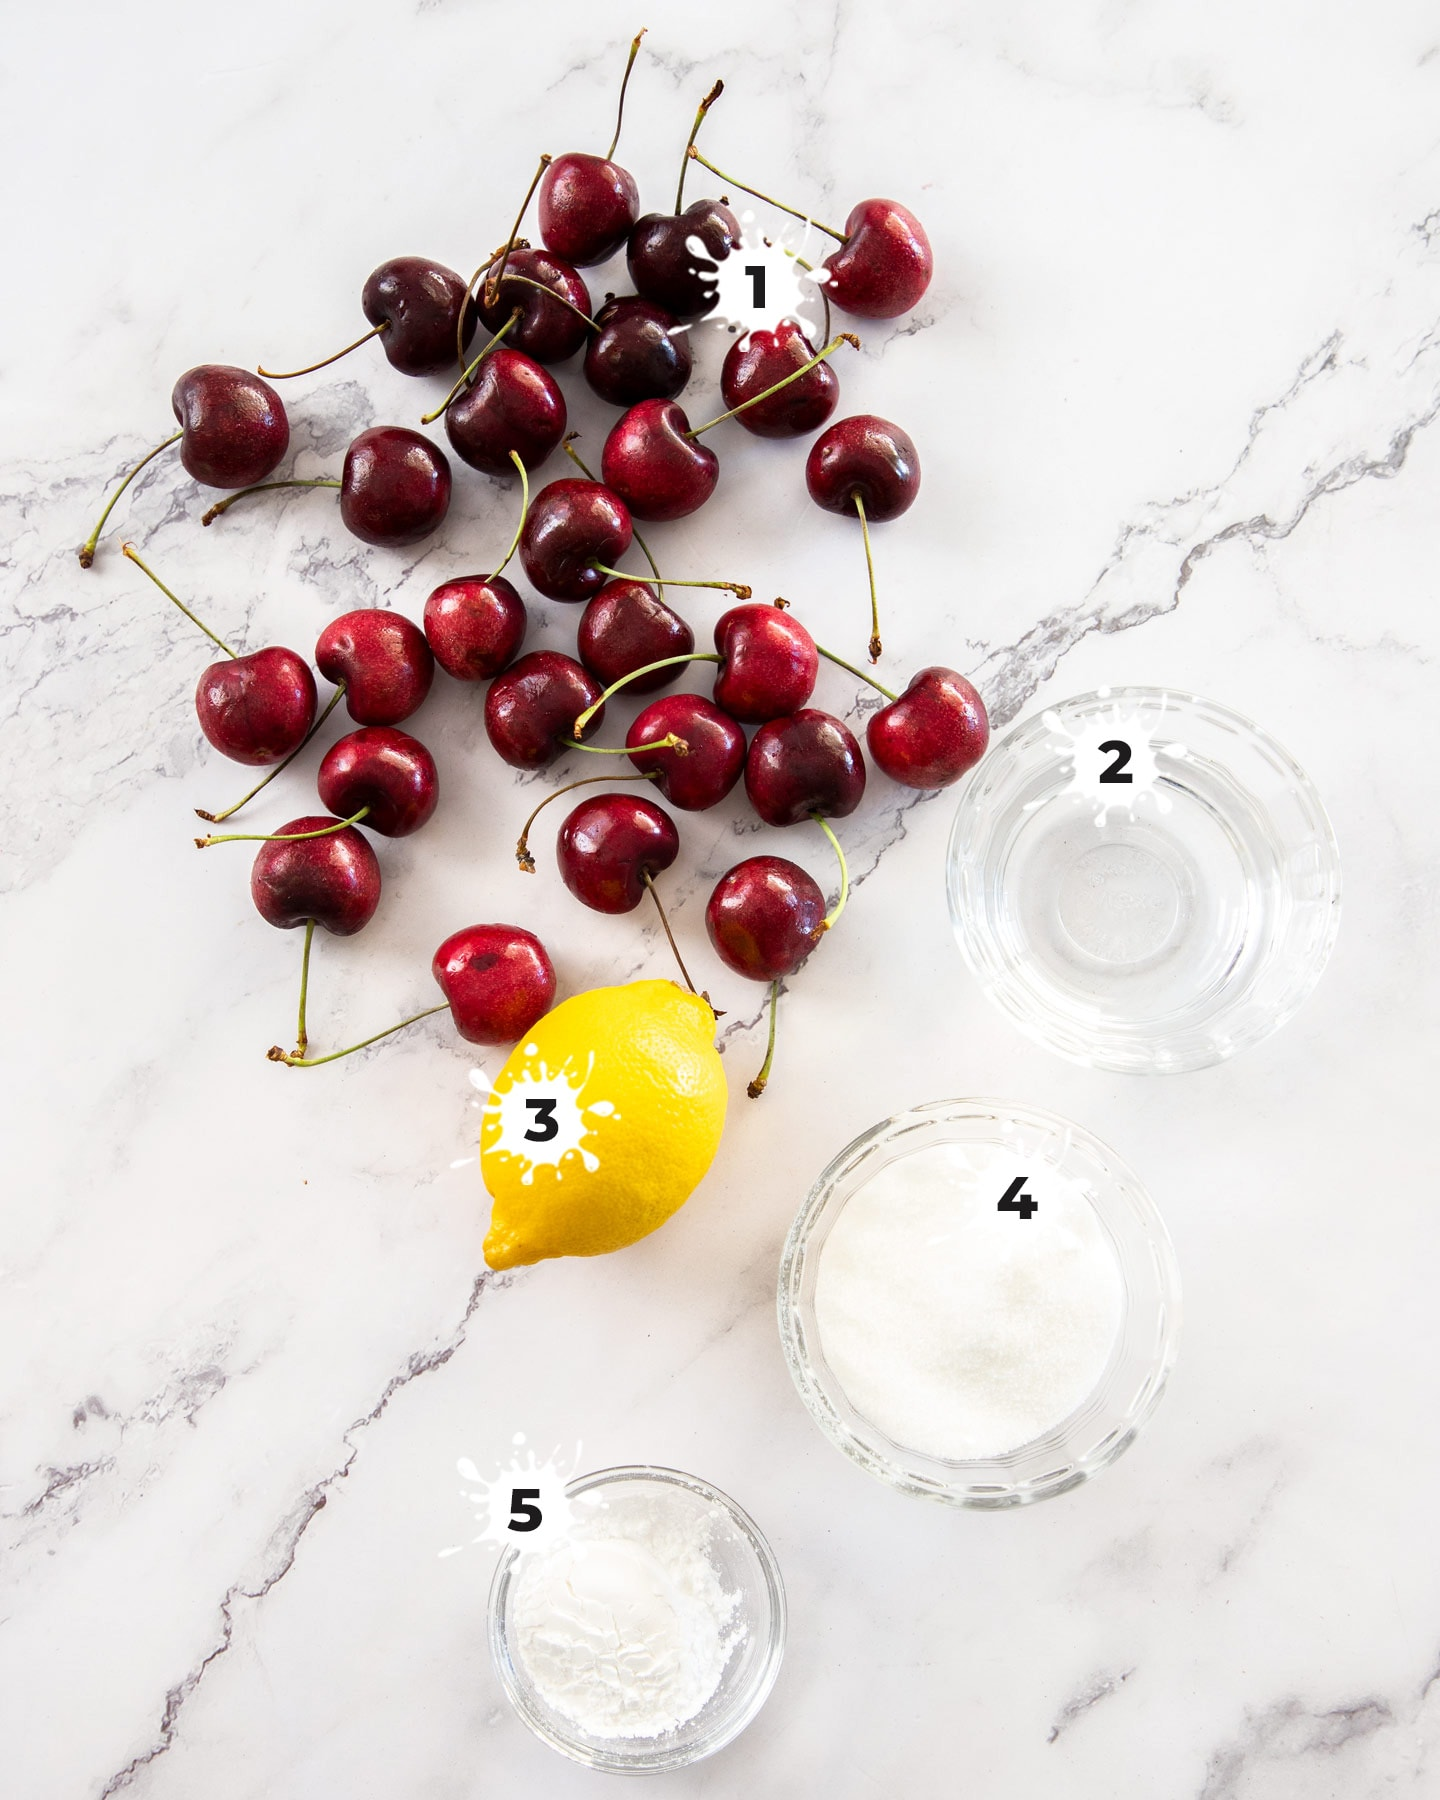 Ingredients for cherry sauce on a marble surface